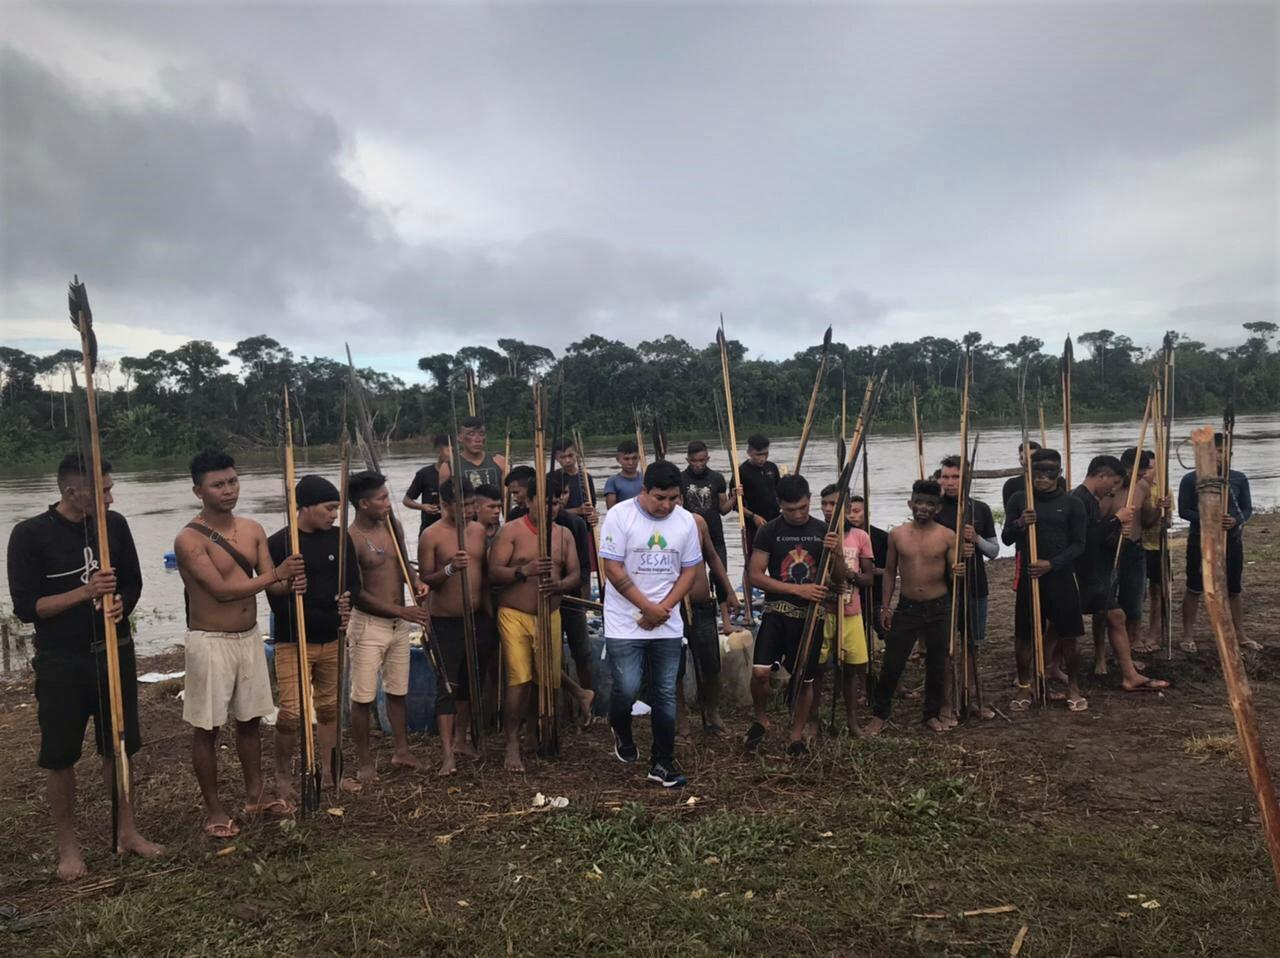 In this video, Júnior Hekurari Yanomami and several other Palimiú residents explain that a group of miners drove up to their village in three different boats around 11am on May 10 and that an exchange of gunfire lasted about 10 minutes.